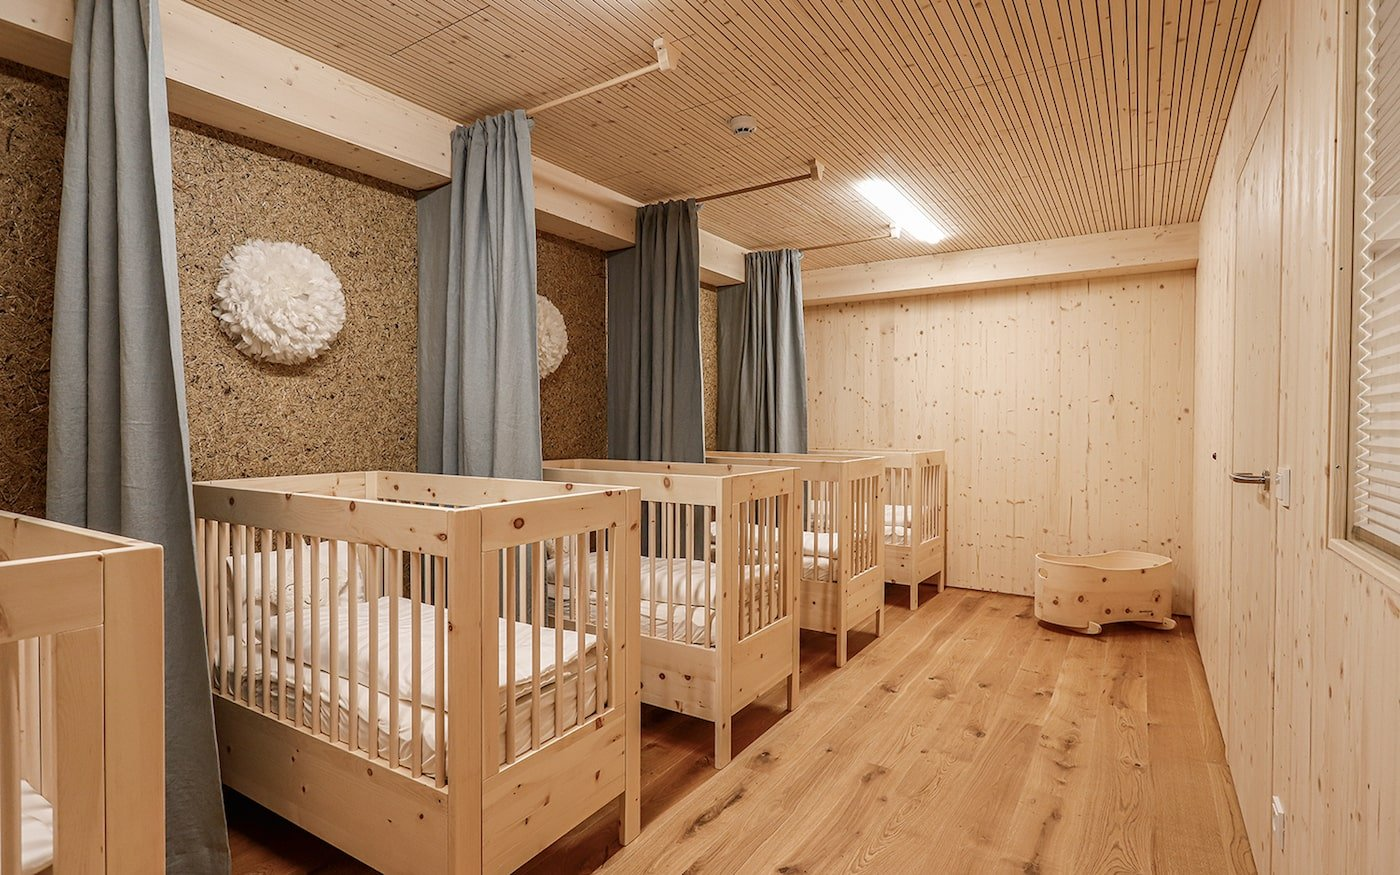 Cot room with timber furniture in sustainable childcare centre